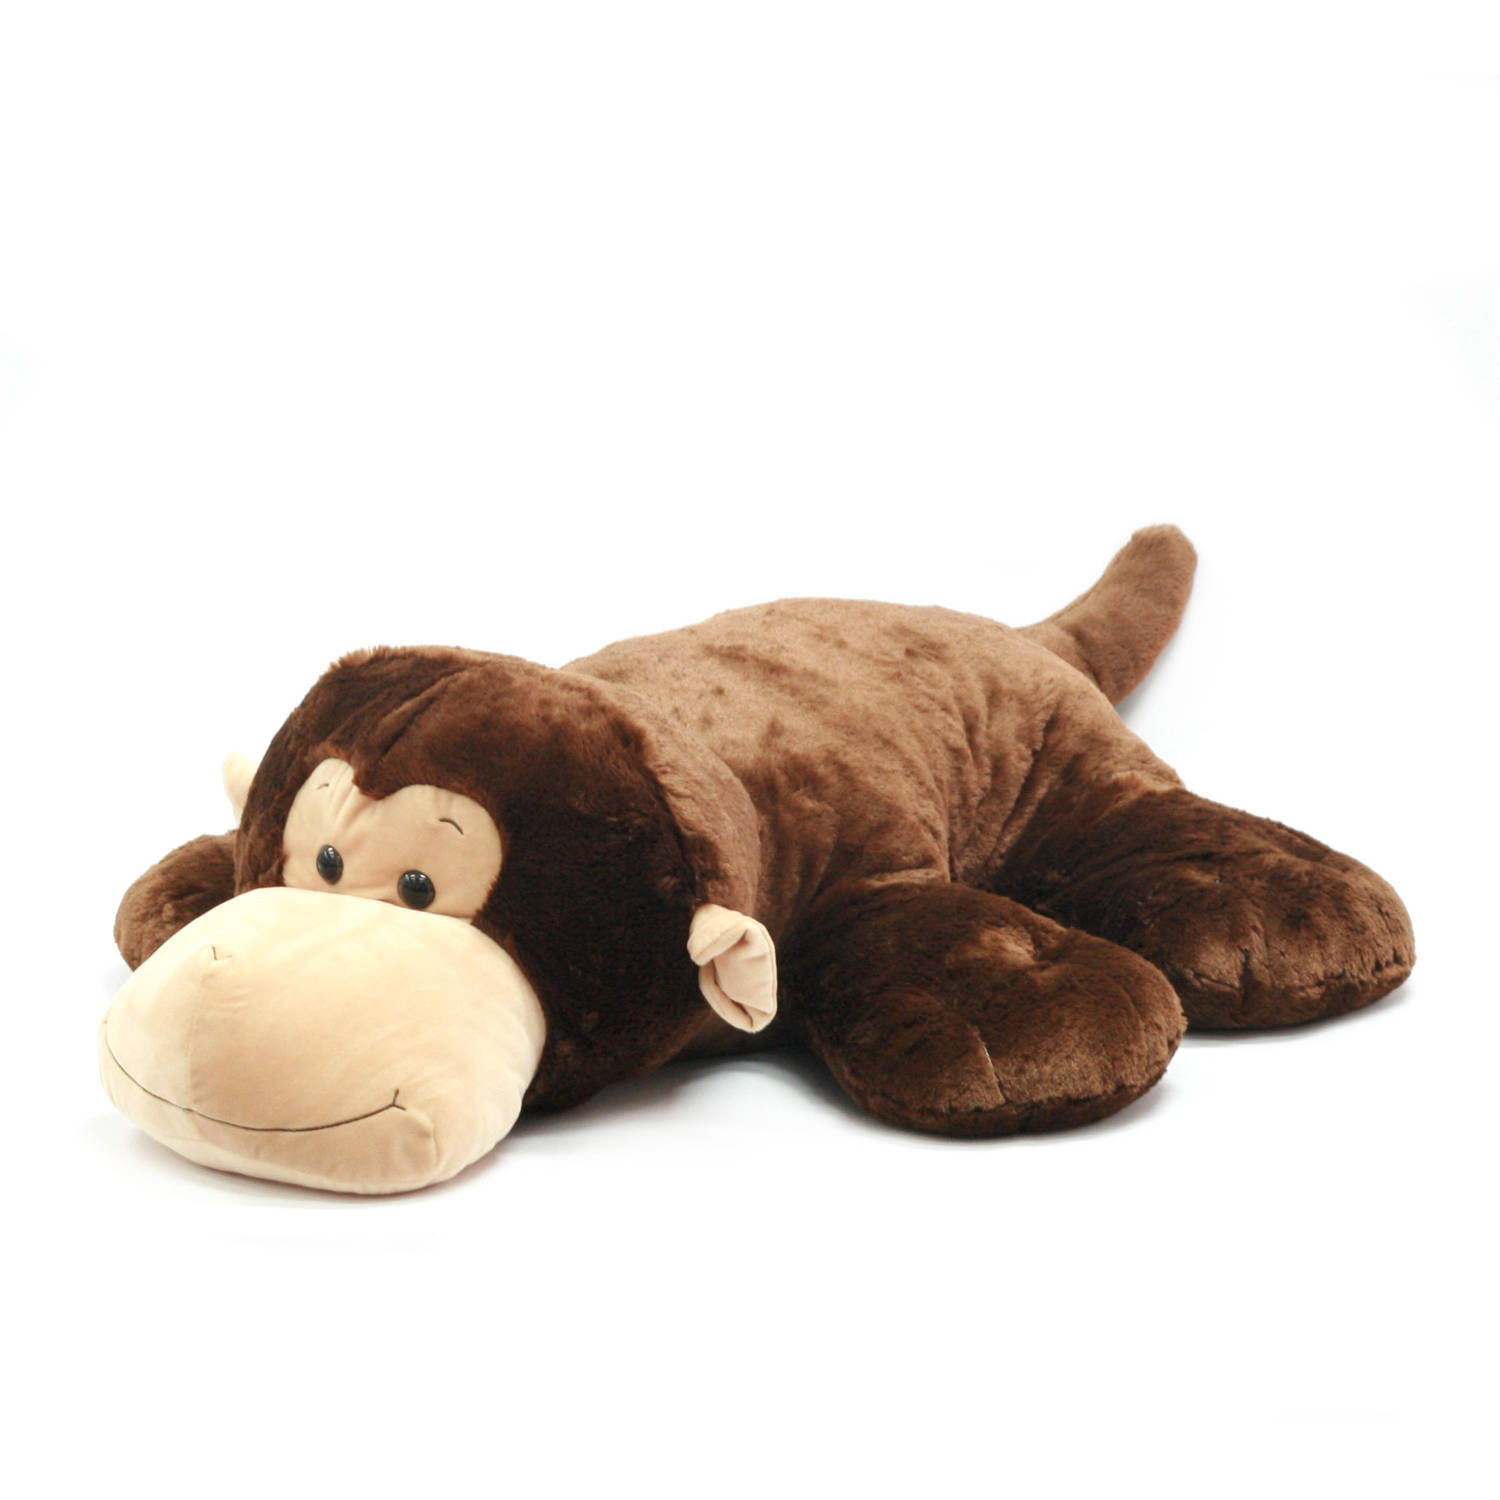 "Spark 44"" Stuffed Plush Fluffy Floppy Animal, Monkey"